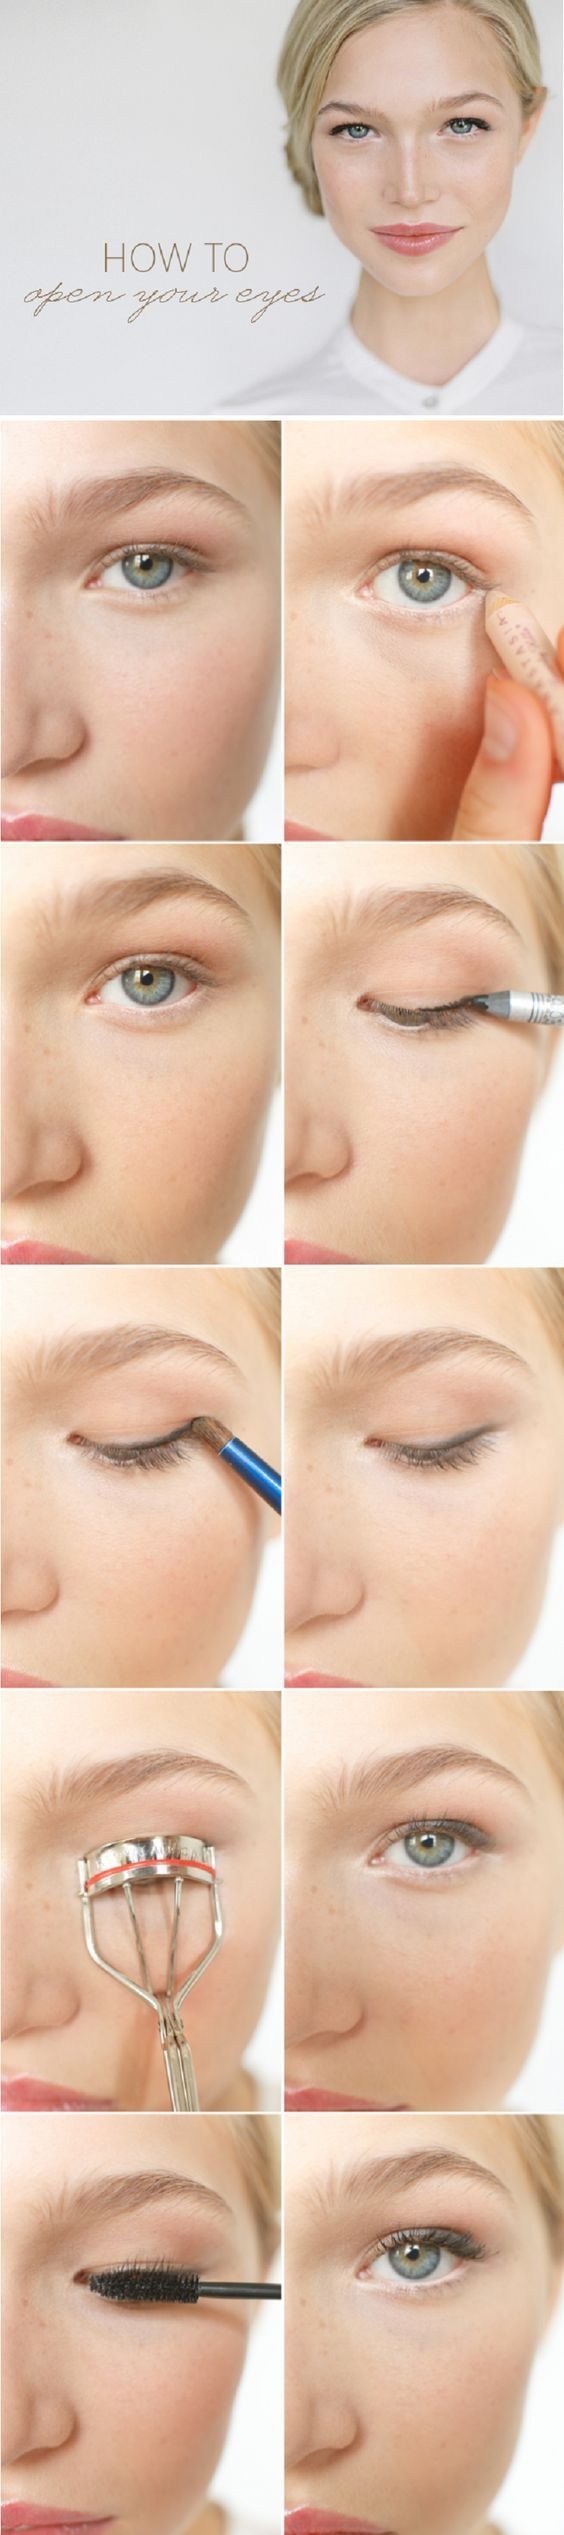 How To Open Your Eyes with 3 Products or Less